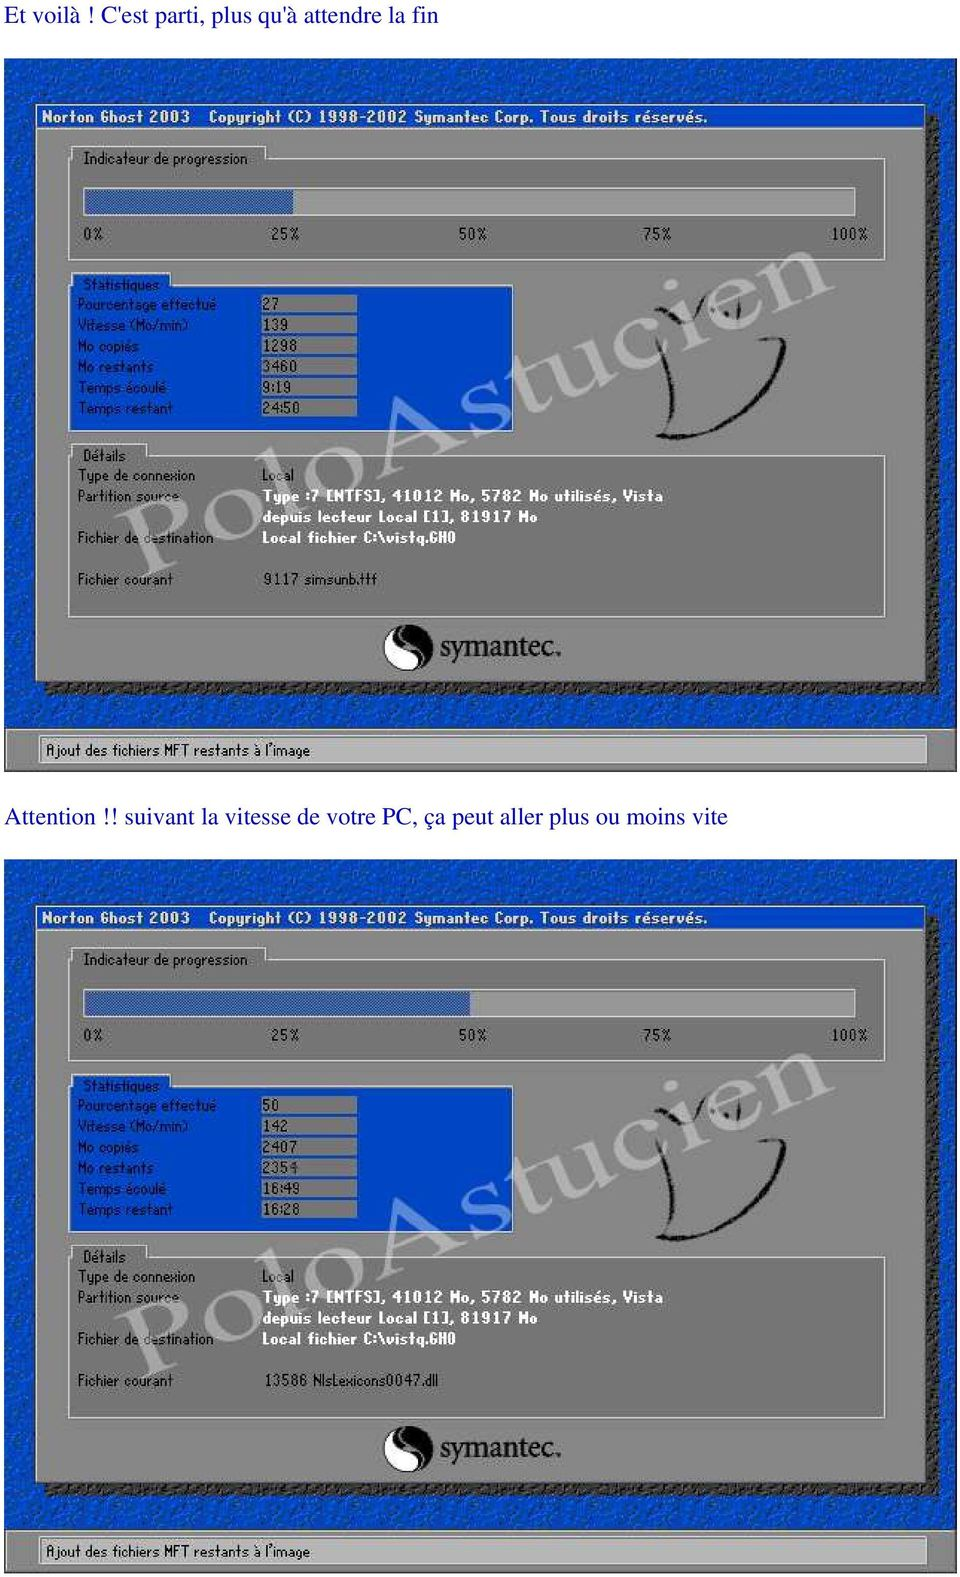 la fin Attention!